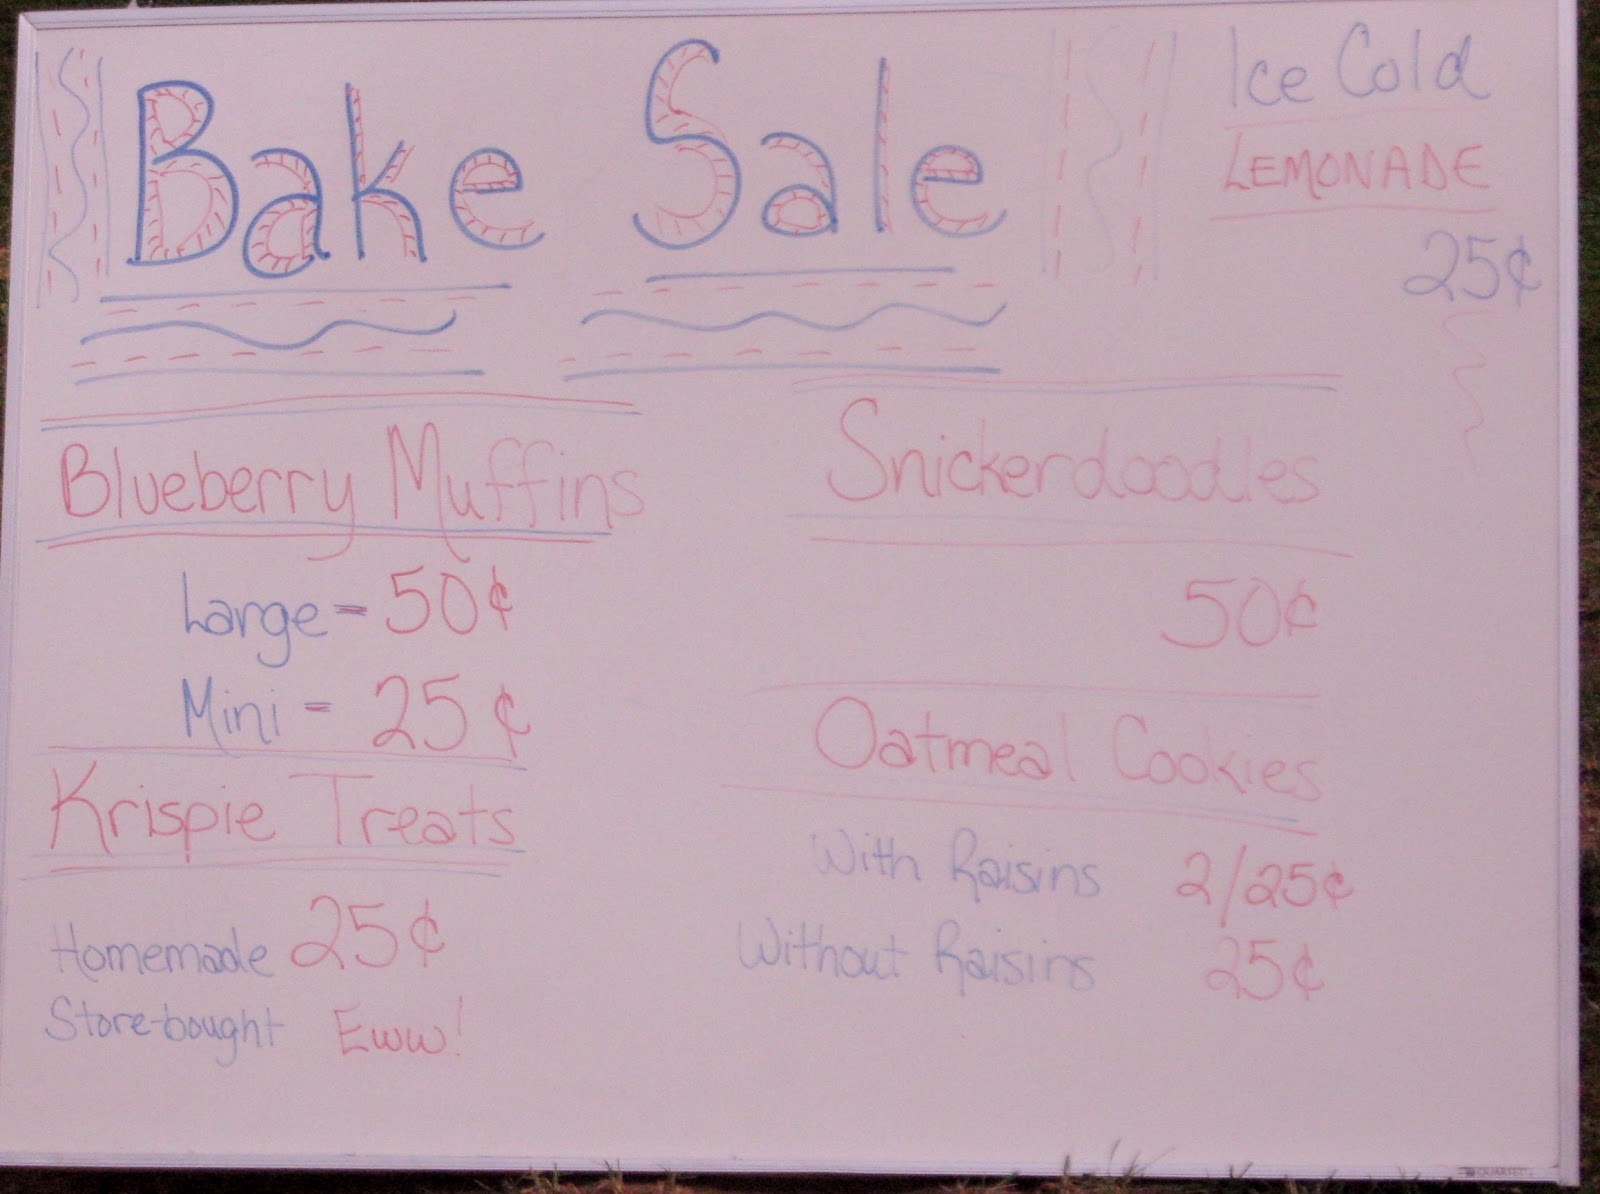 seams inspired bake the bake sign injecting a little humor helps sells see krispie treats pricing